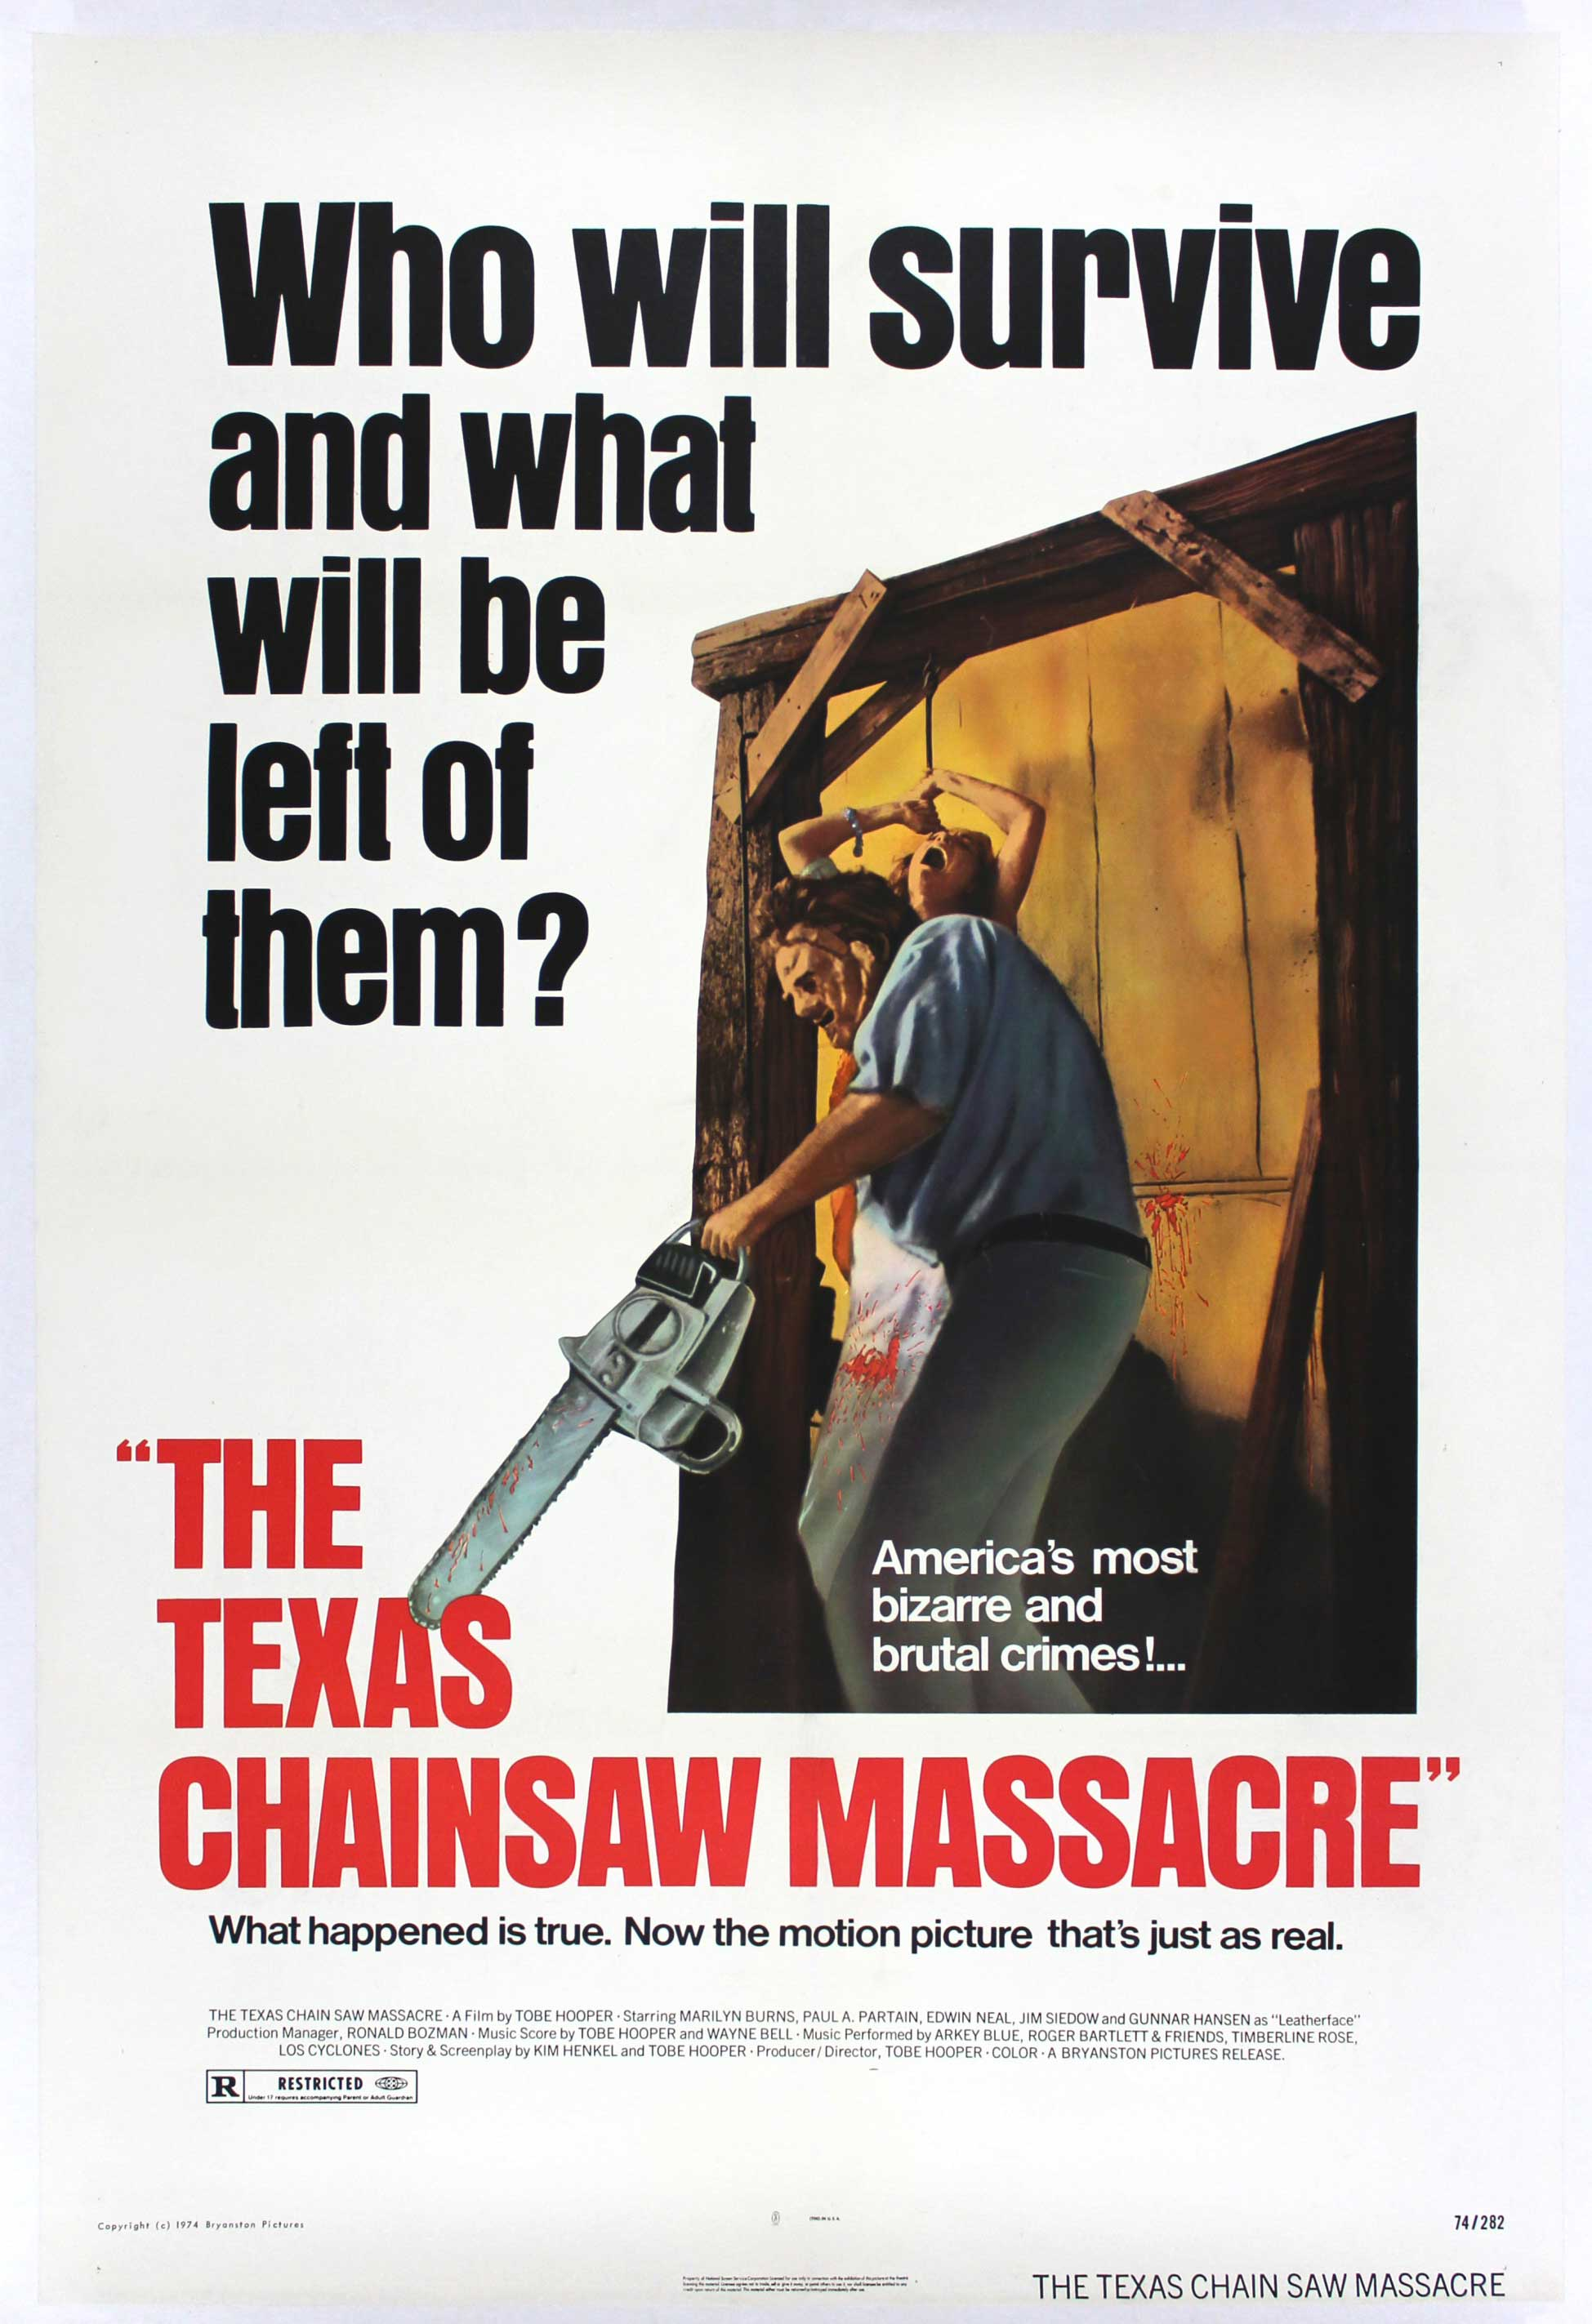 The Texas Chain Saw Massacre